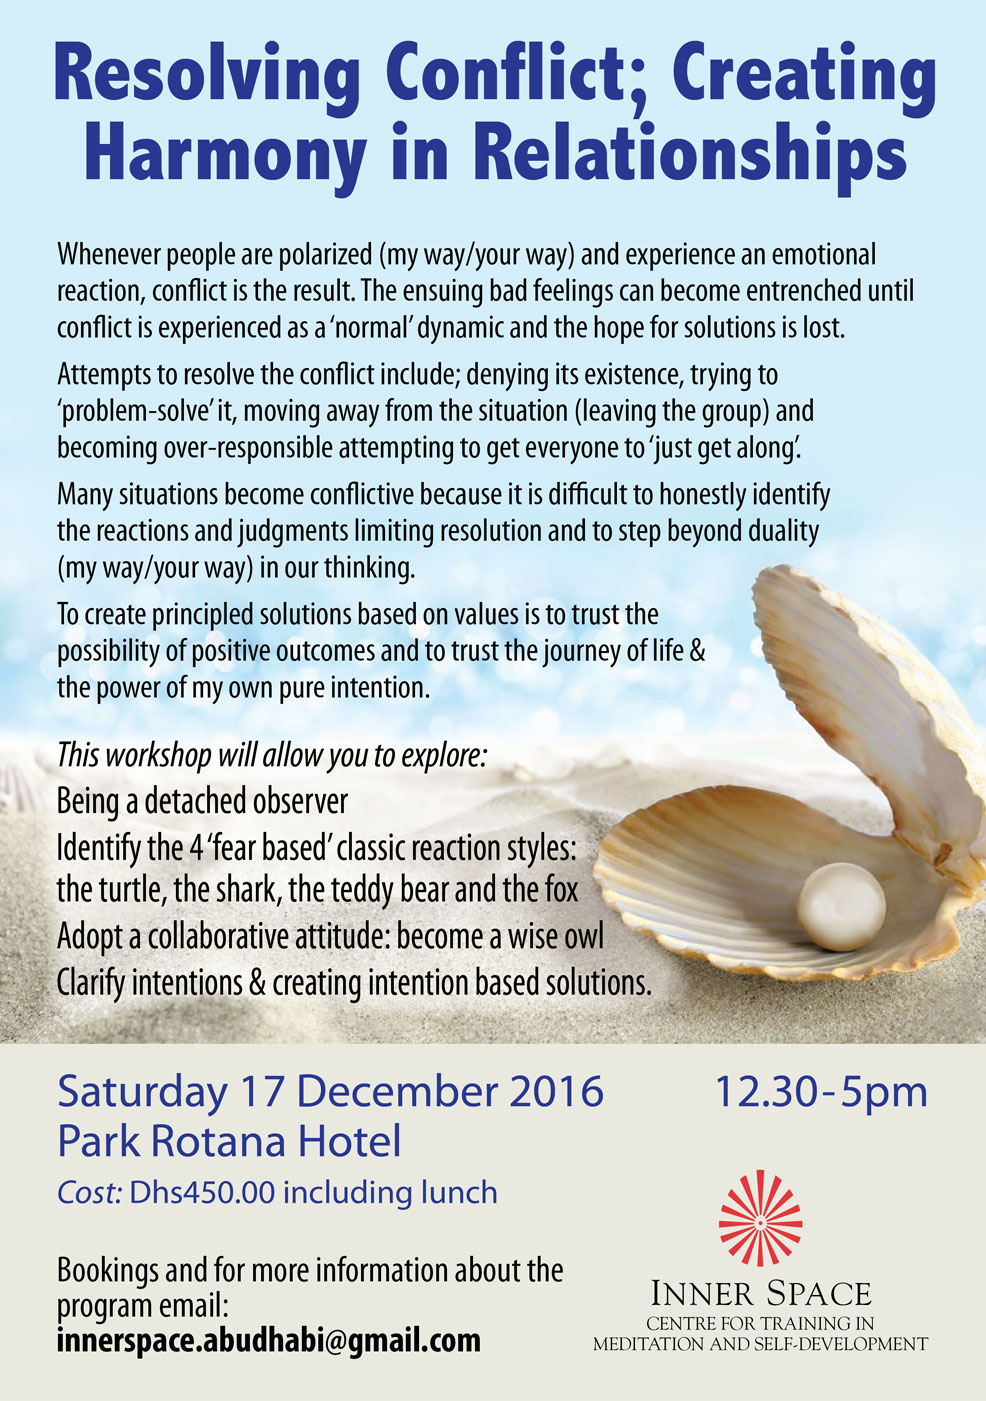 Saturday 17 December, 12.30-5pm.